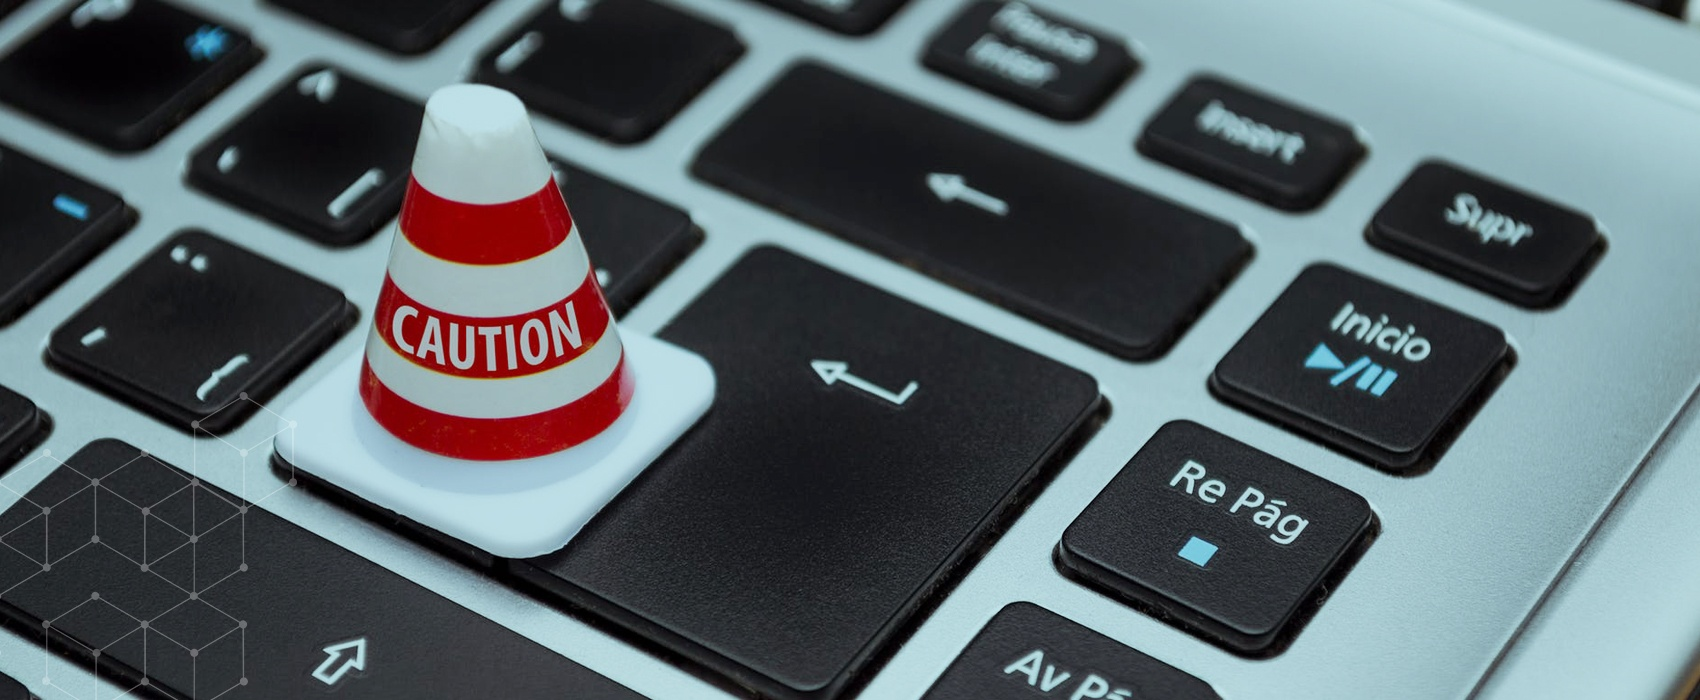 """Caution"" cone resting on keyboard"